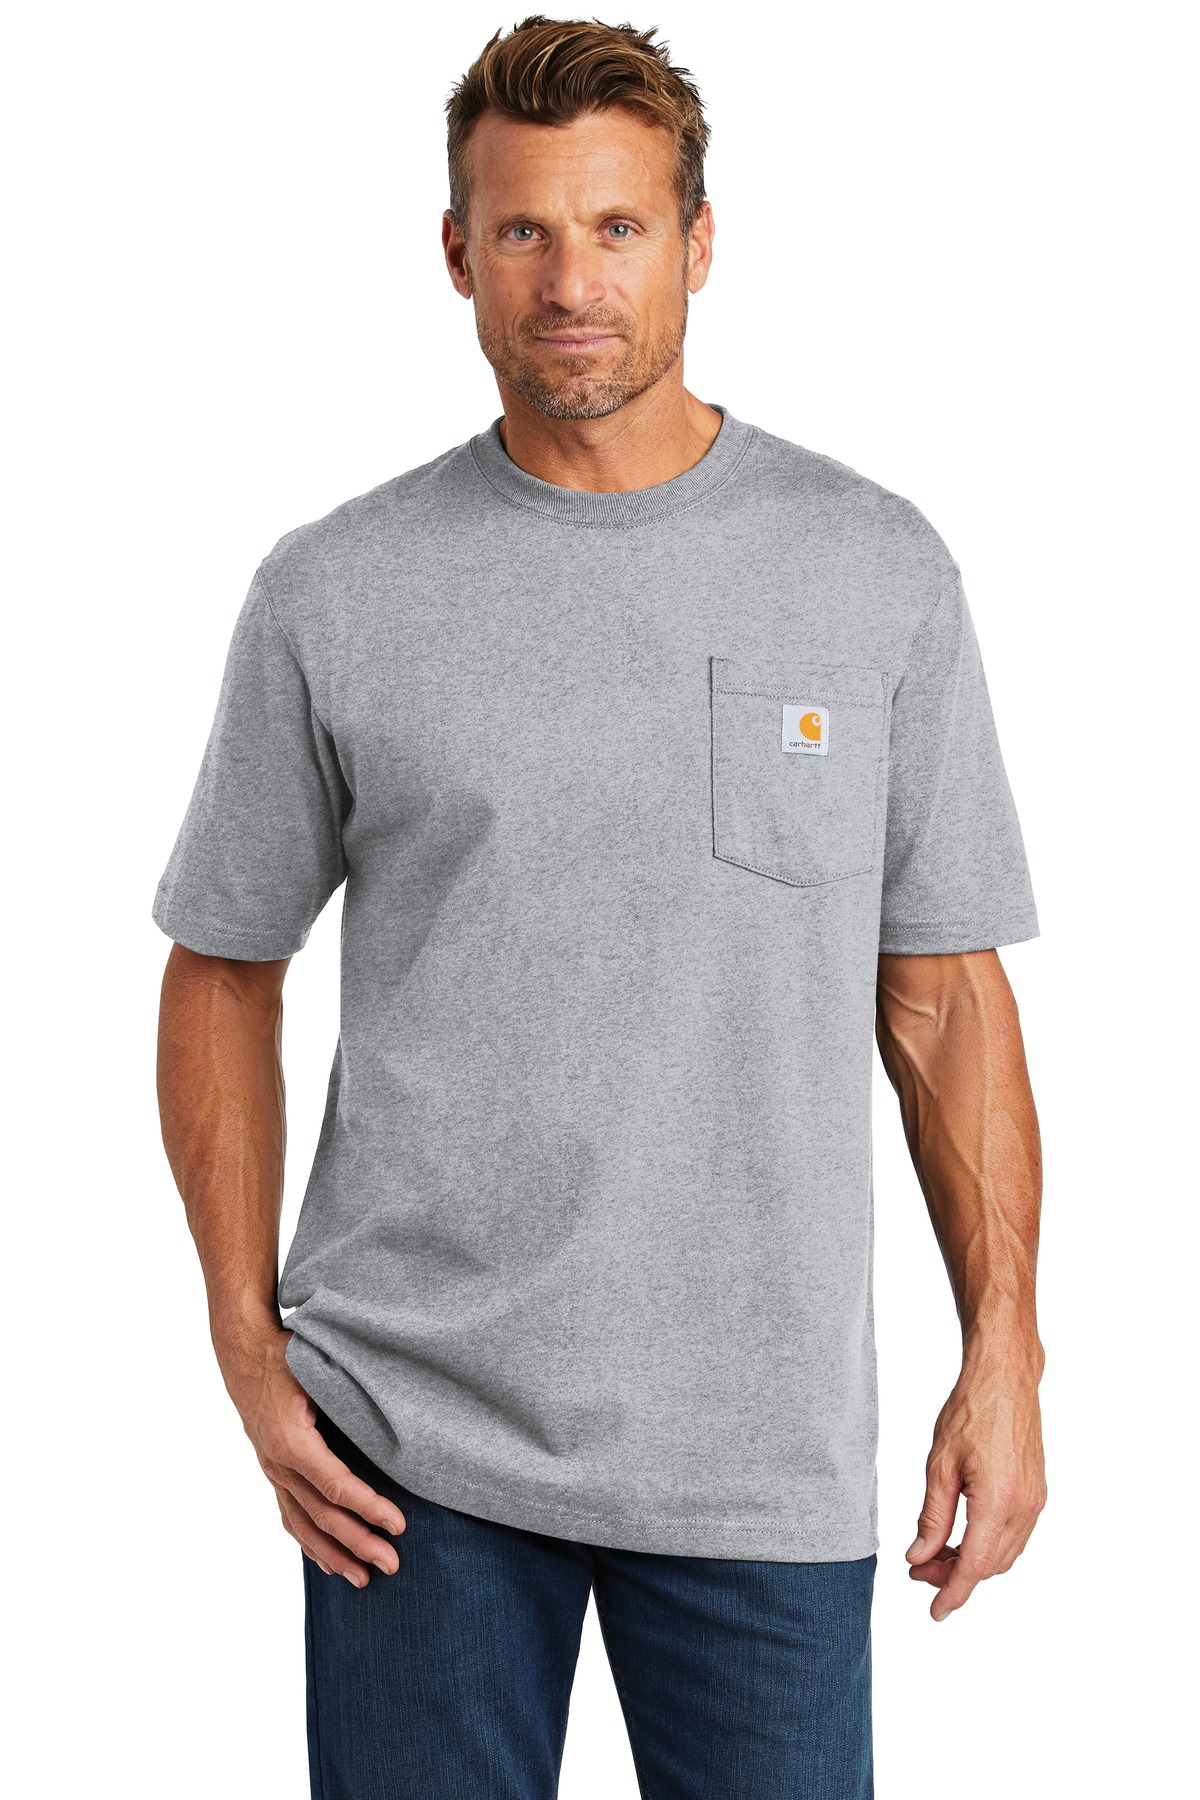 Carhartt  ®  Tall Workwear Pocket Short Sleeve T-Shirt. CTTK87 - Heather Grey